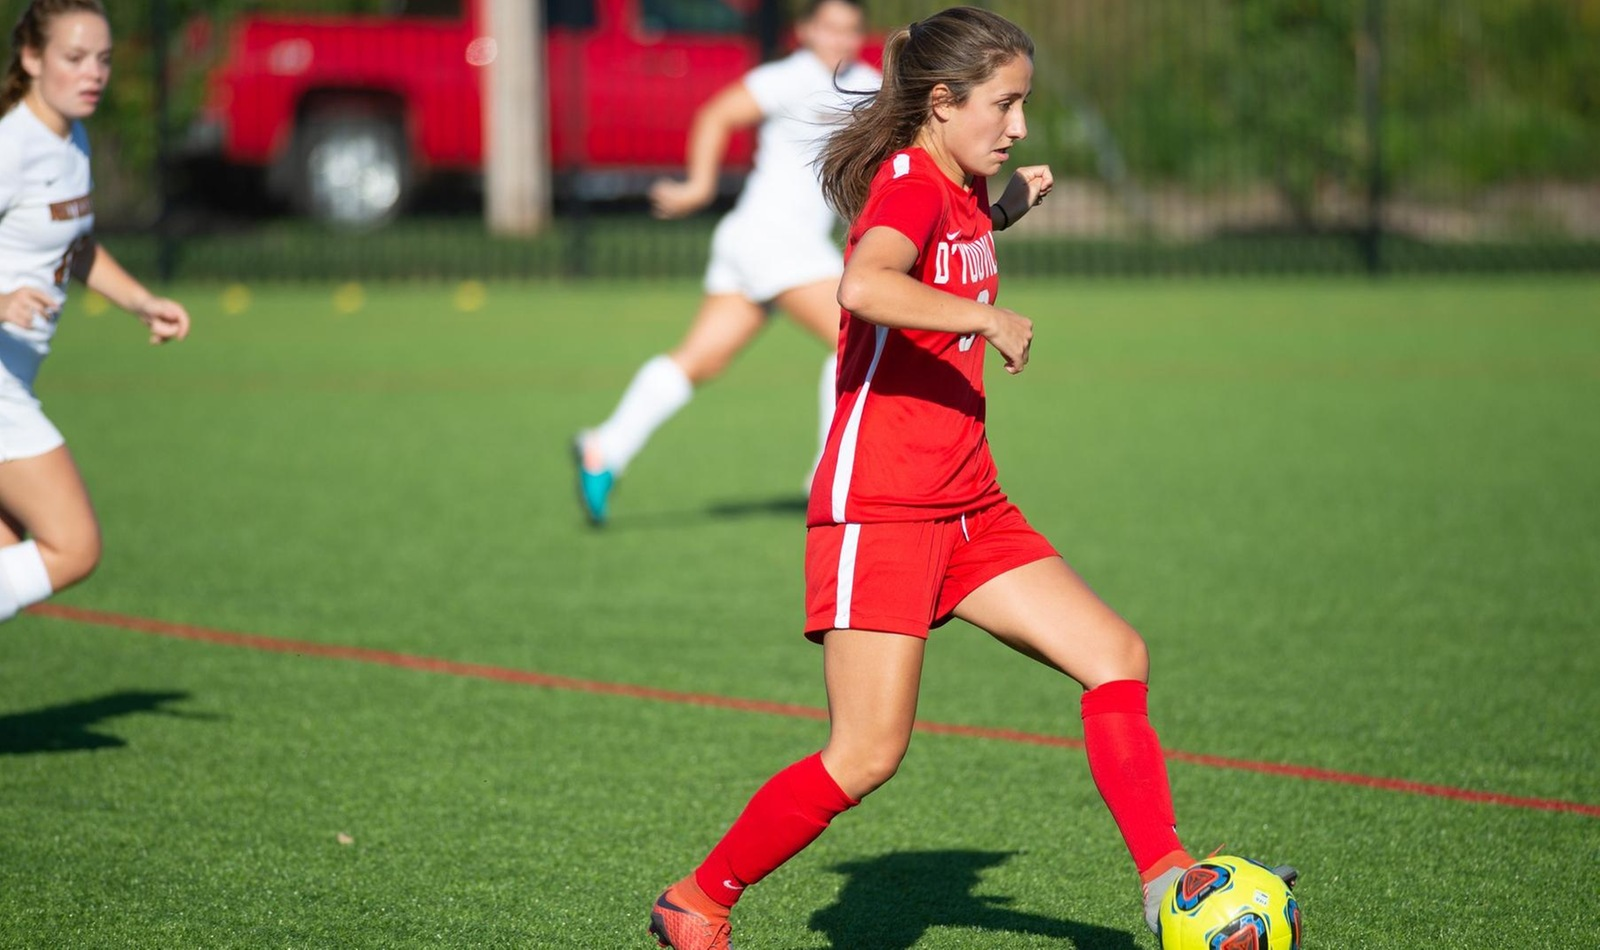 Weekend Closes with Spartans Loss against Potsdam